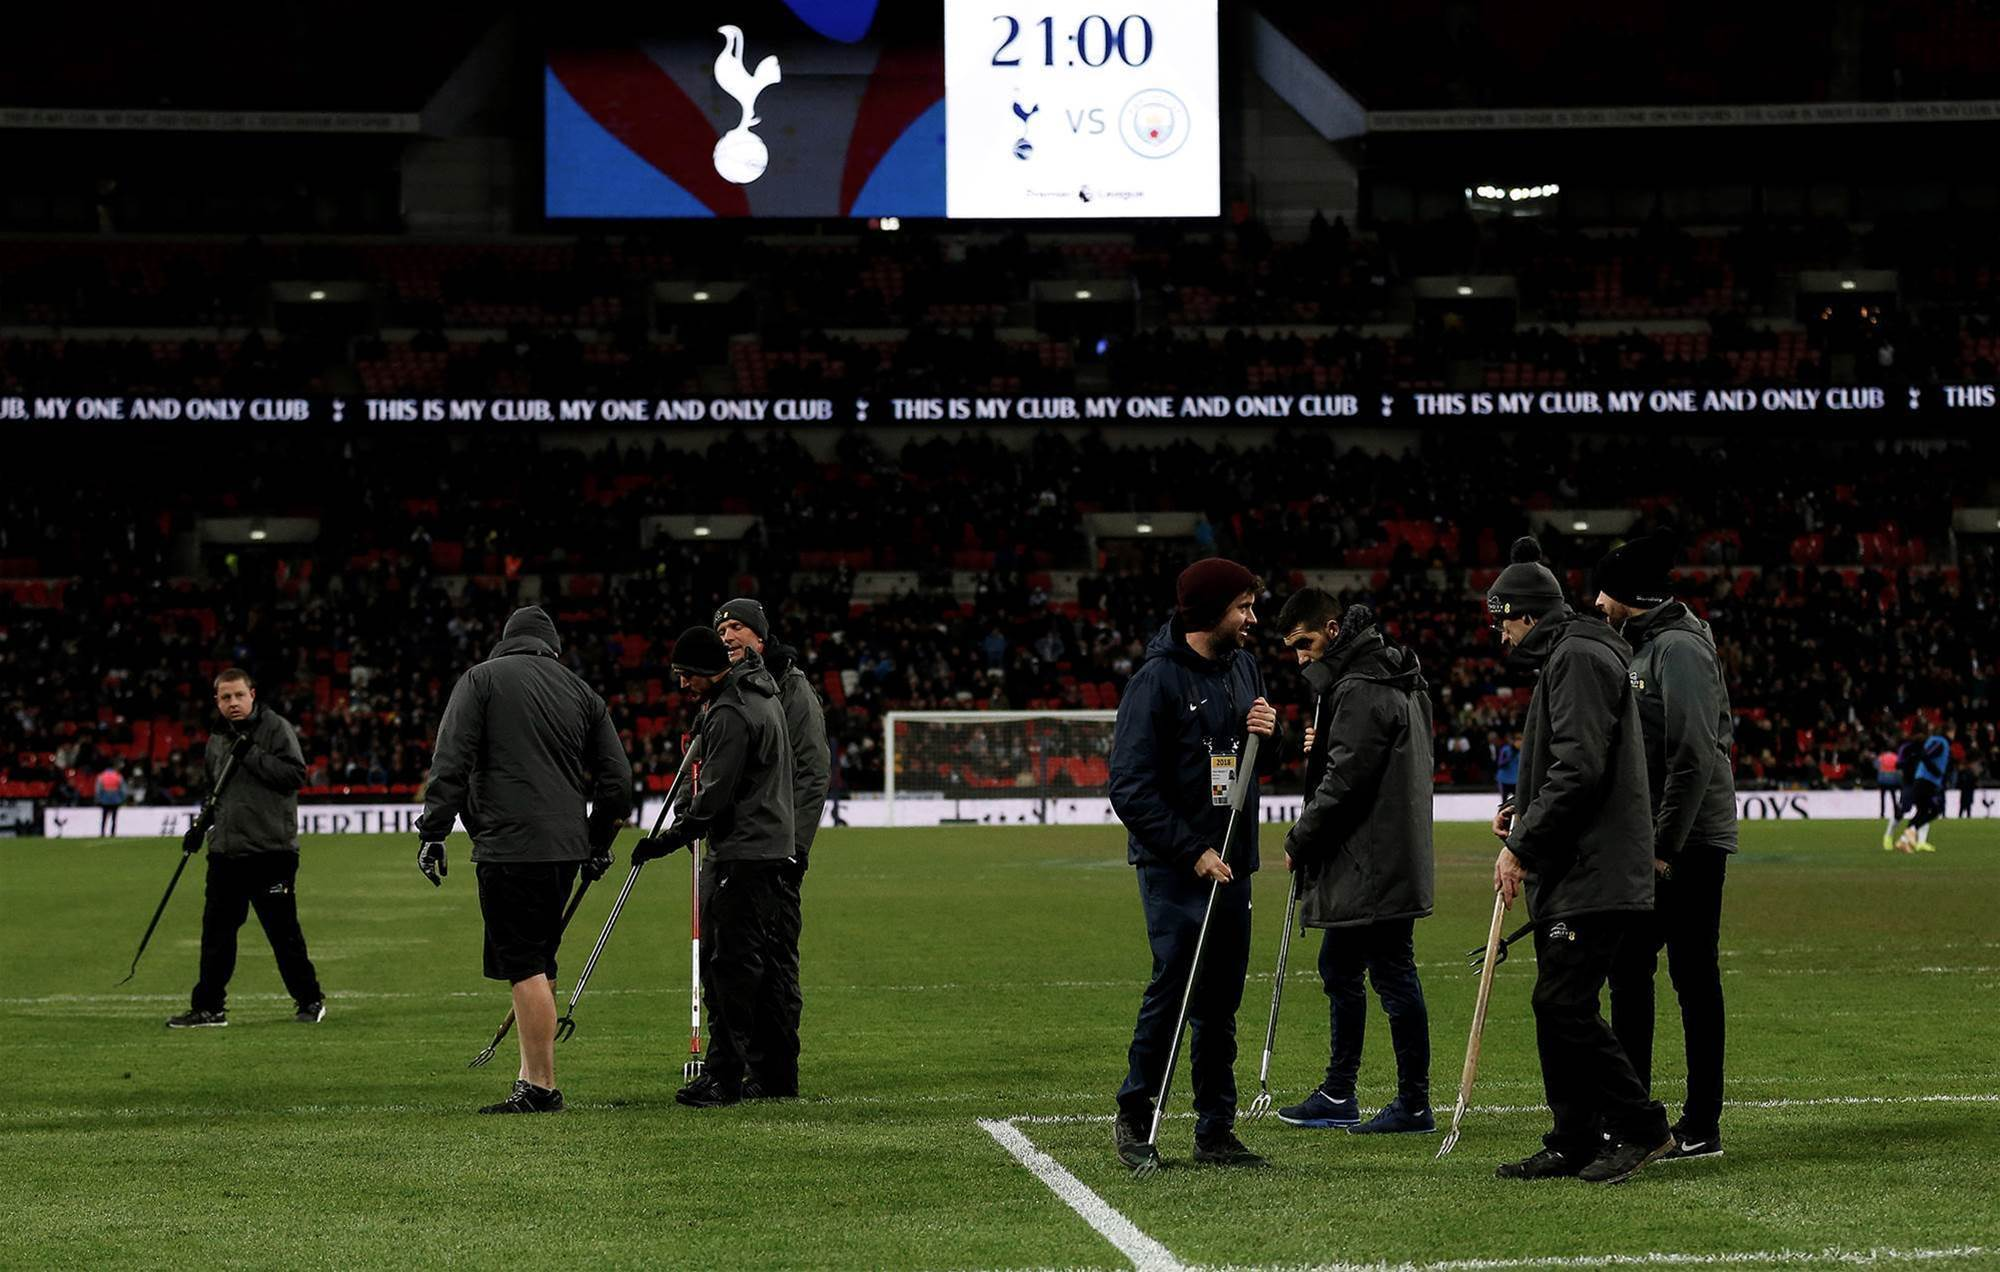 Gallery: Wembley's 'worst' pitch